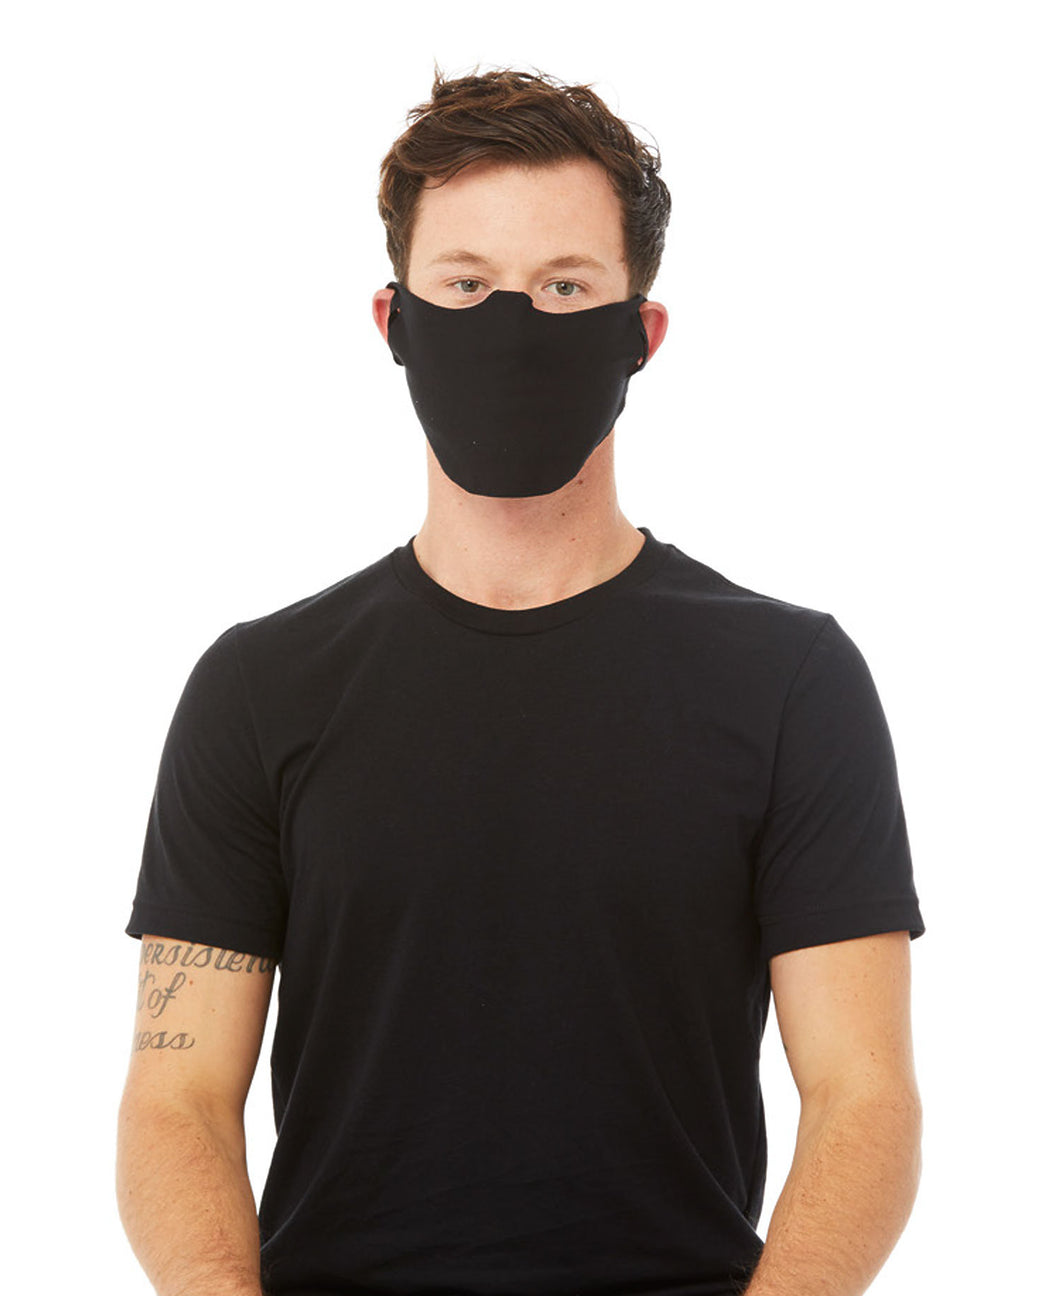 20 Pack of Canvas Facemask Guards: (All in stock items ordered by 12:00 pm, ship same day)